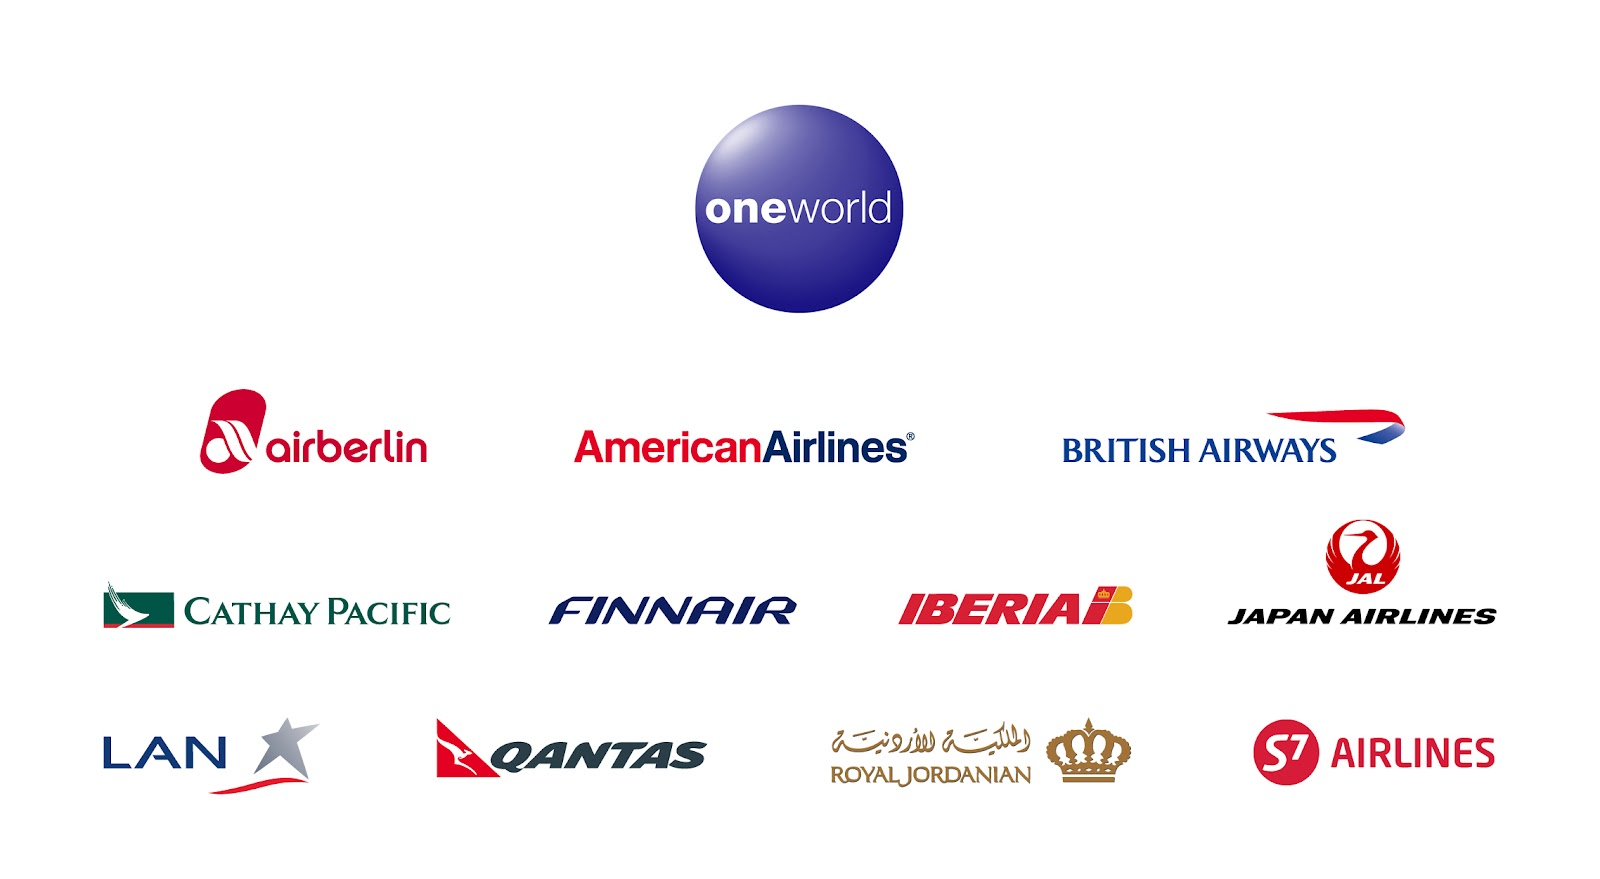 flying into trouble the oneworld alliance and Qatar airways inclusion 'disgraces oneworld alliance'  i am one of their flight  attendants and was surprised to see this in the media since nobody  have been  in trouble for stupid reasons and are suspended from flying are trapped in doha.